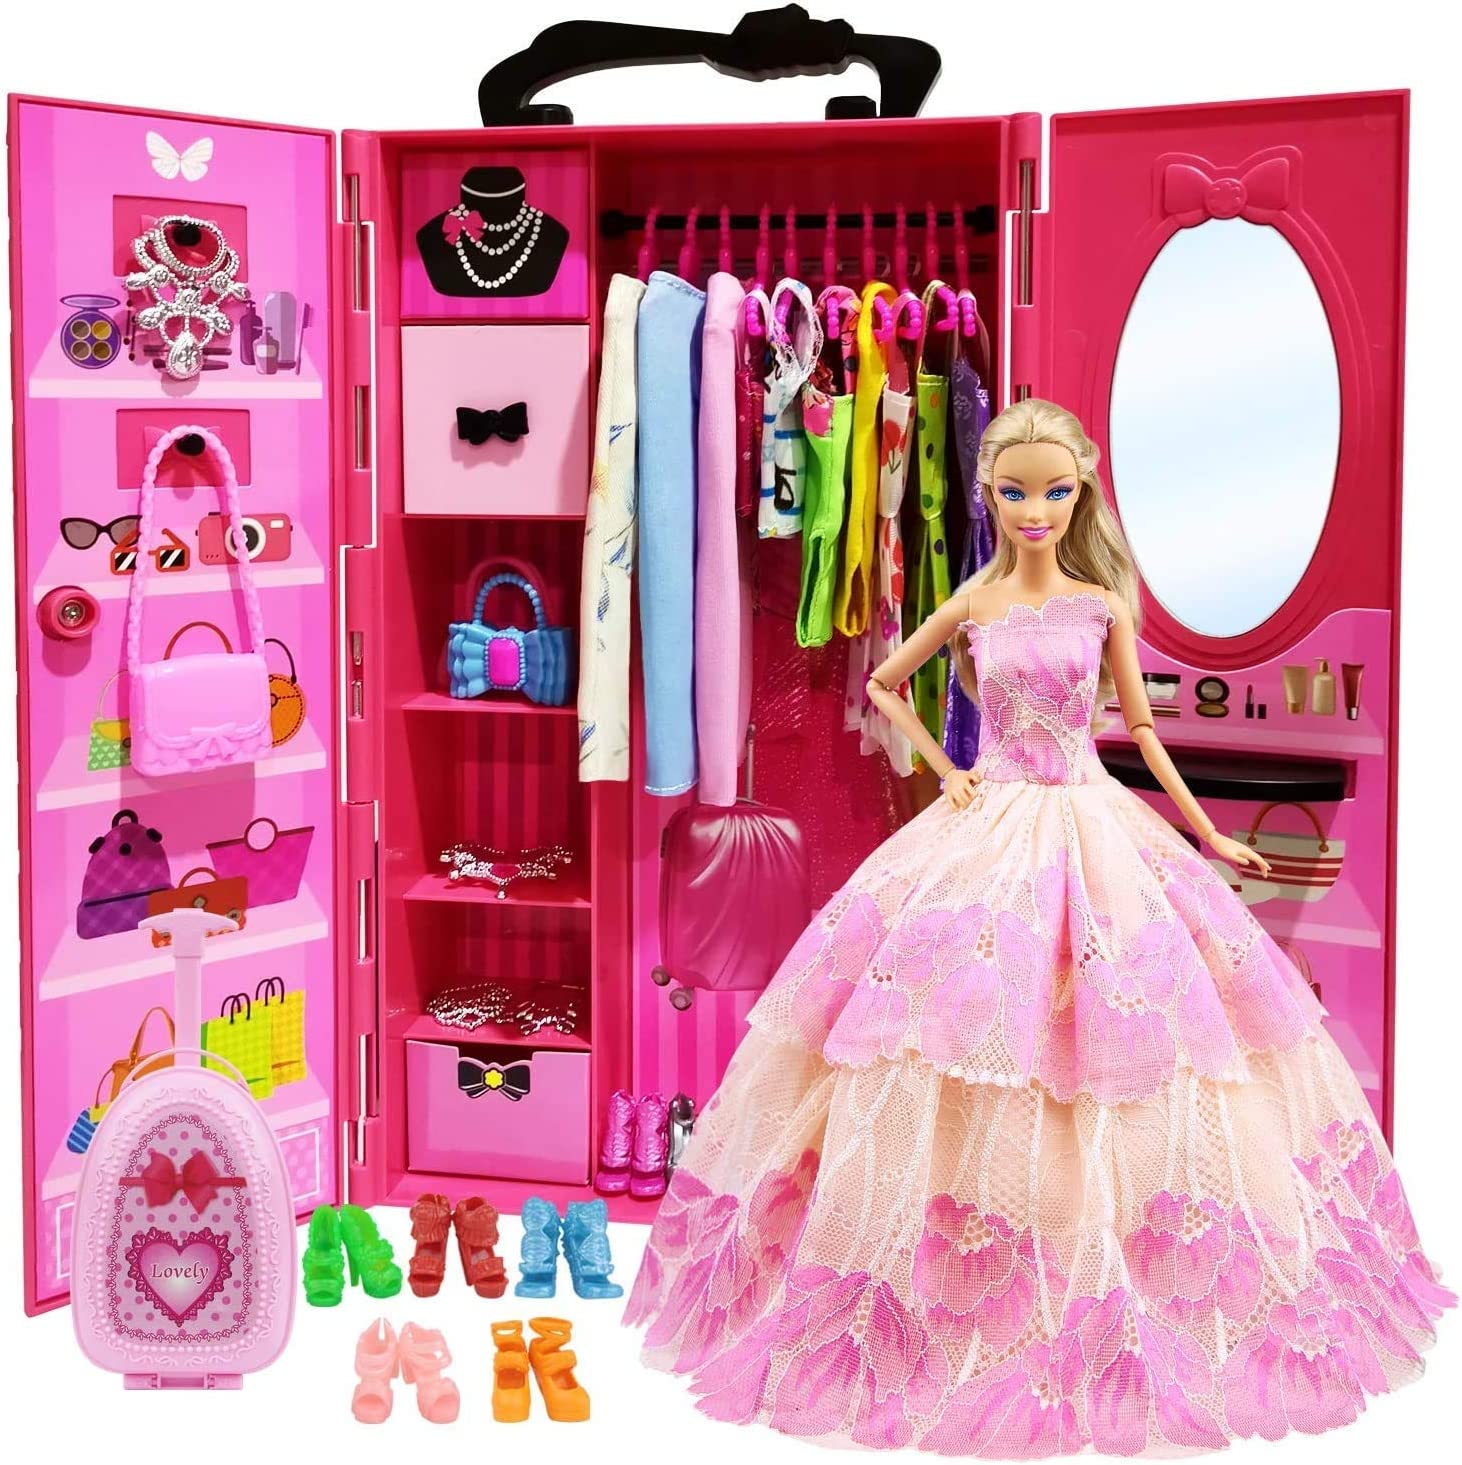 DIY Doll Clothes Dress for 16 inch Doll Baby Kids Gifts Skirt Party Clothes New